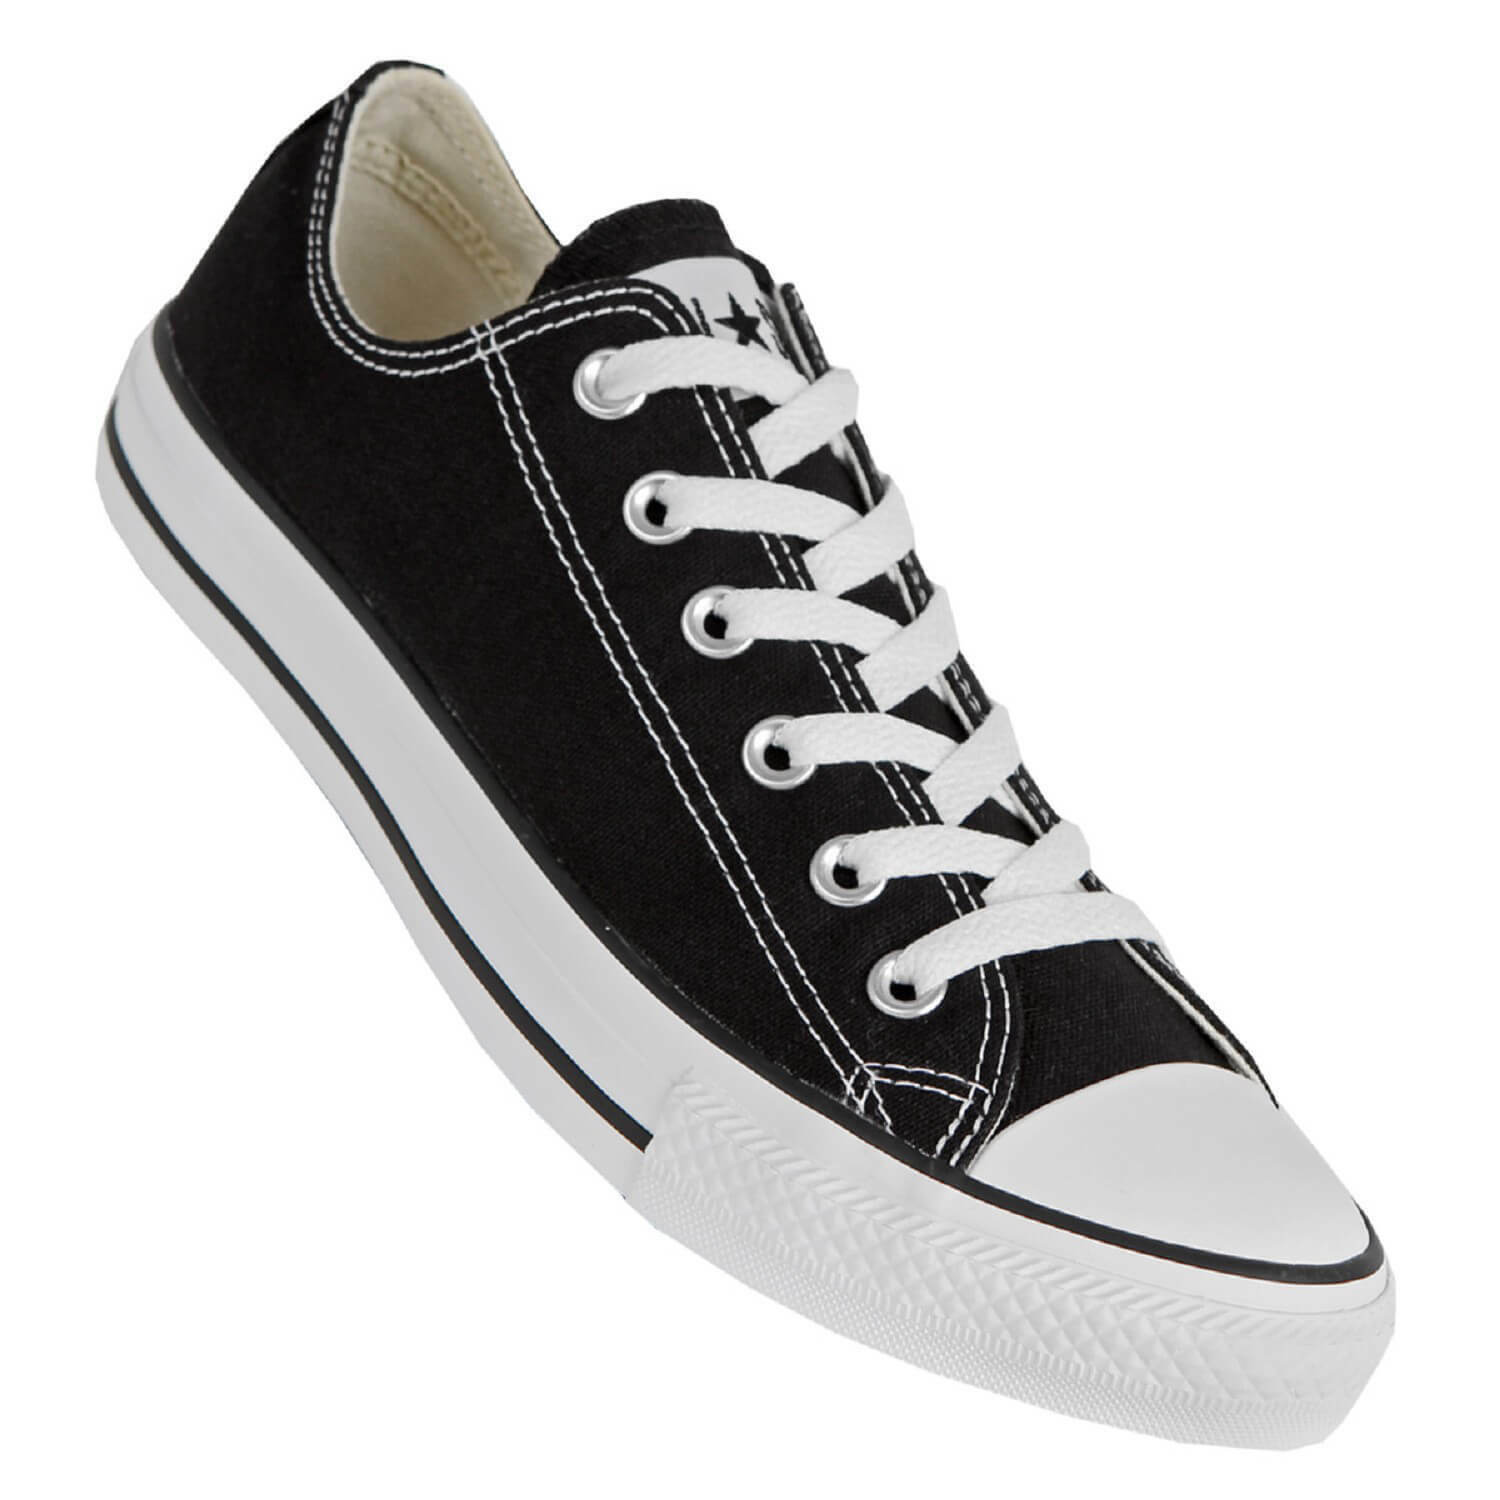 CONVERSE CHUCKS AS LO Negro Blanco - CT AS CHUCKS OX flache Chucks 8170cf